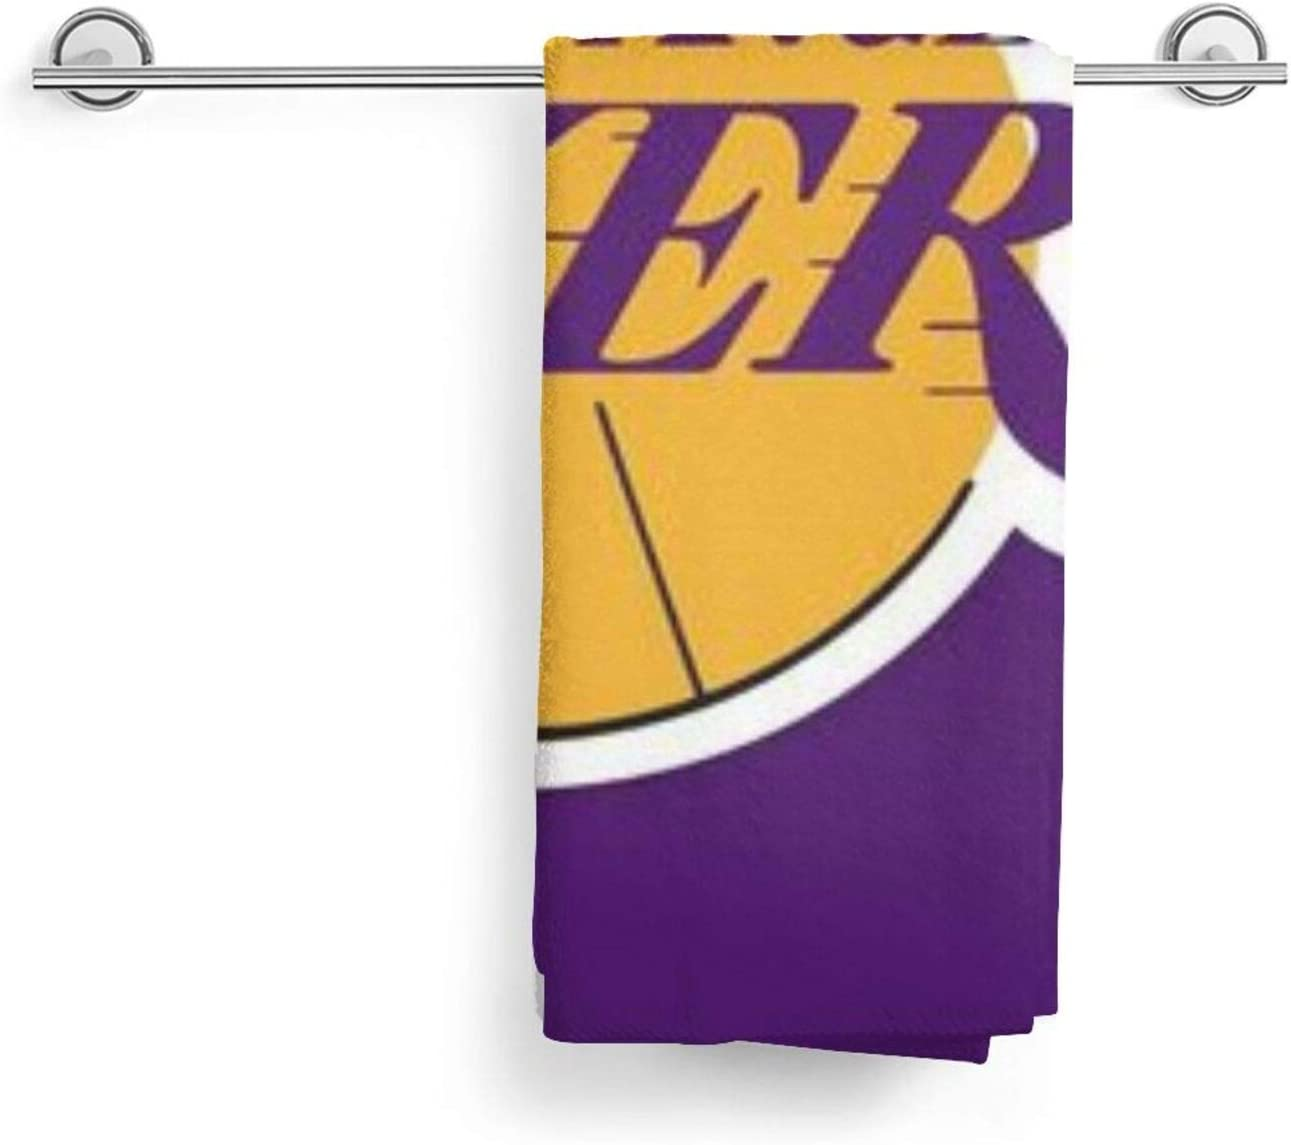 Microfiber Sand Free Beach La Lakers Towel Blanket-Quick Fast Dry Super Absorbent Lightweight Thin Towel for Travel Pool Swimming